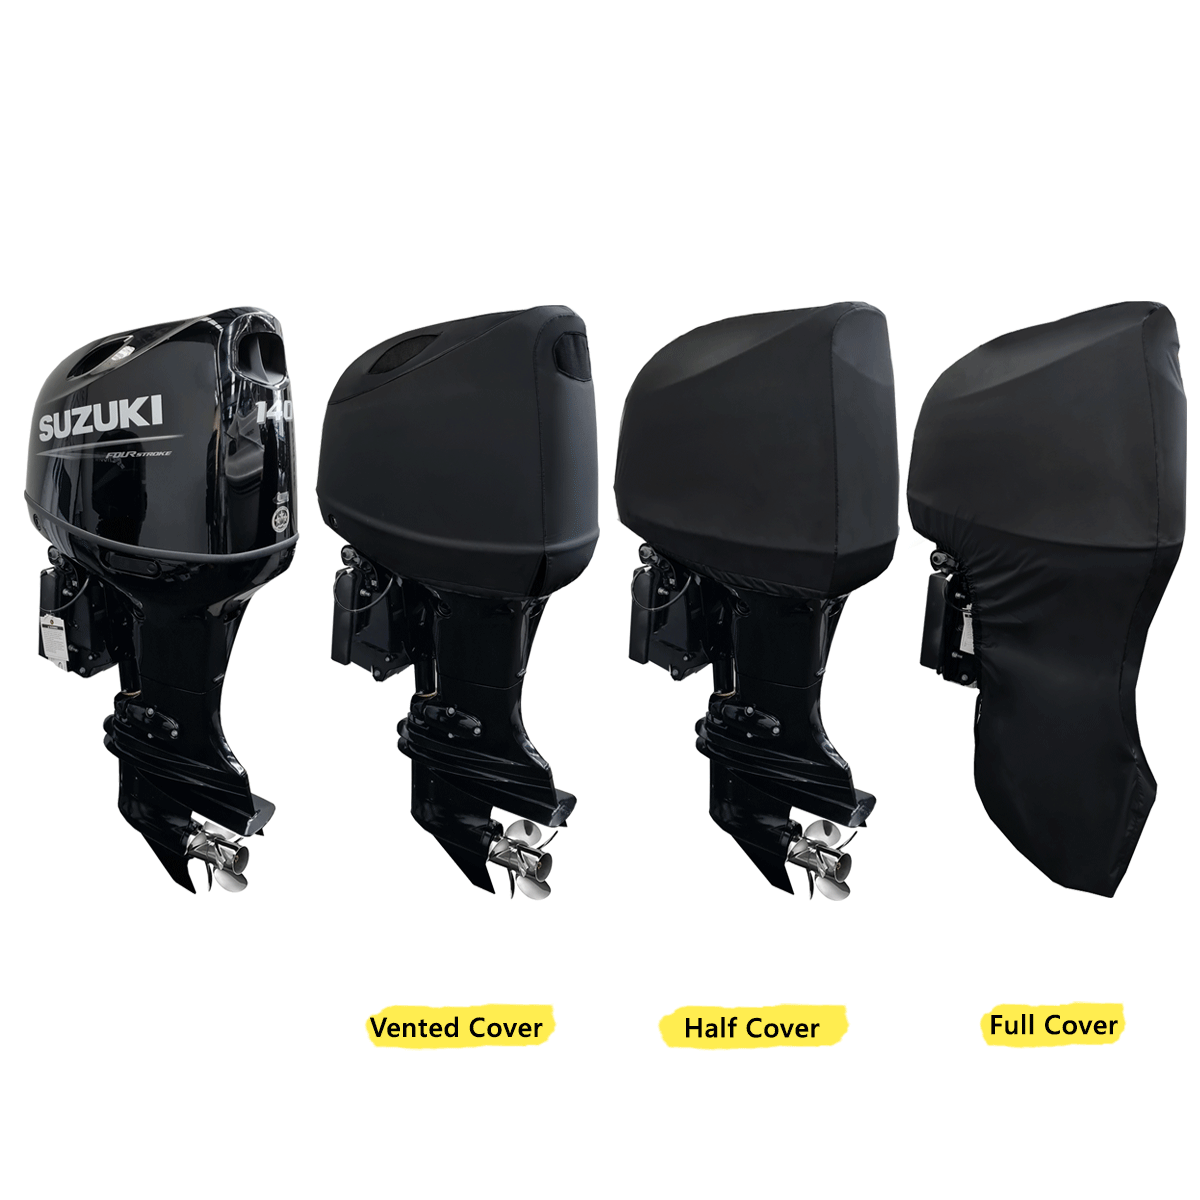 Outboard Motor Covers for Suzuki